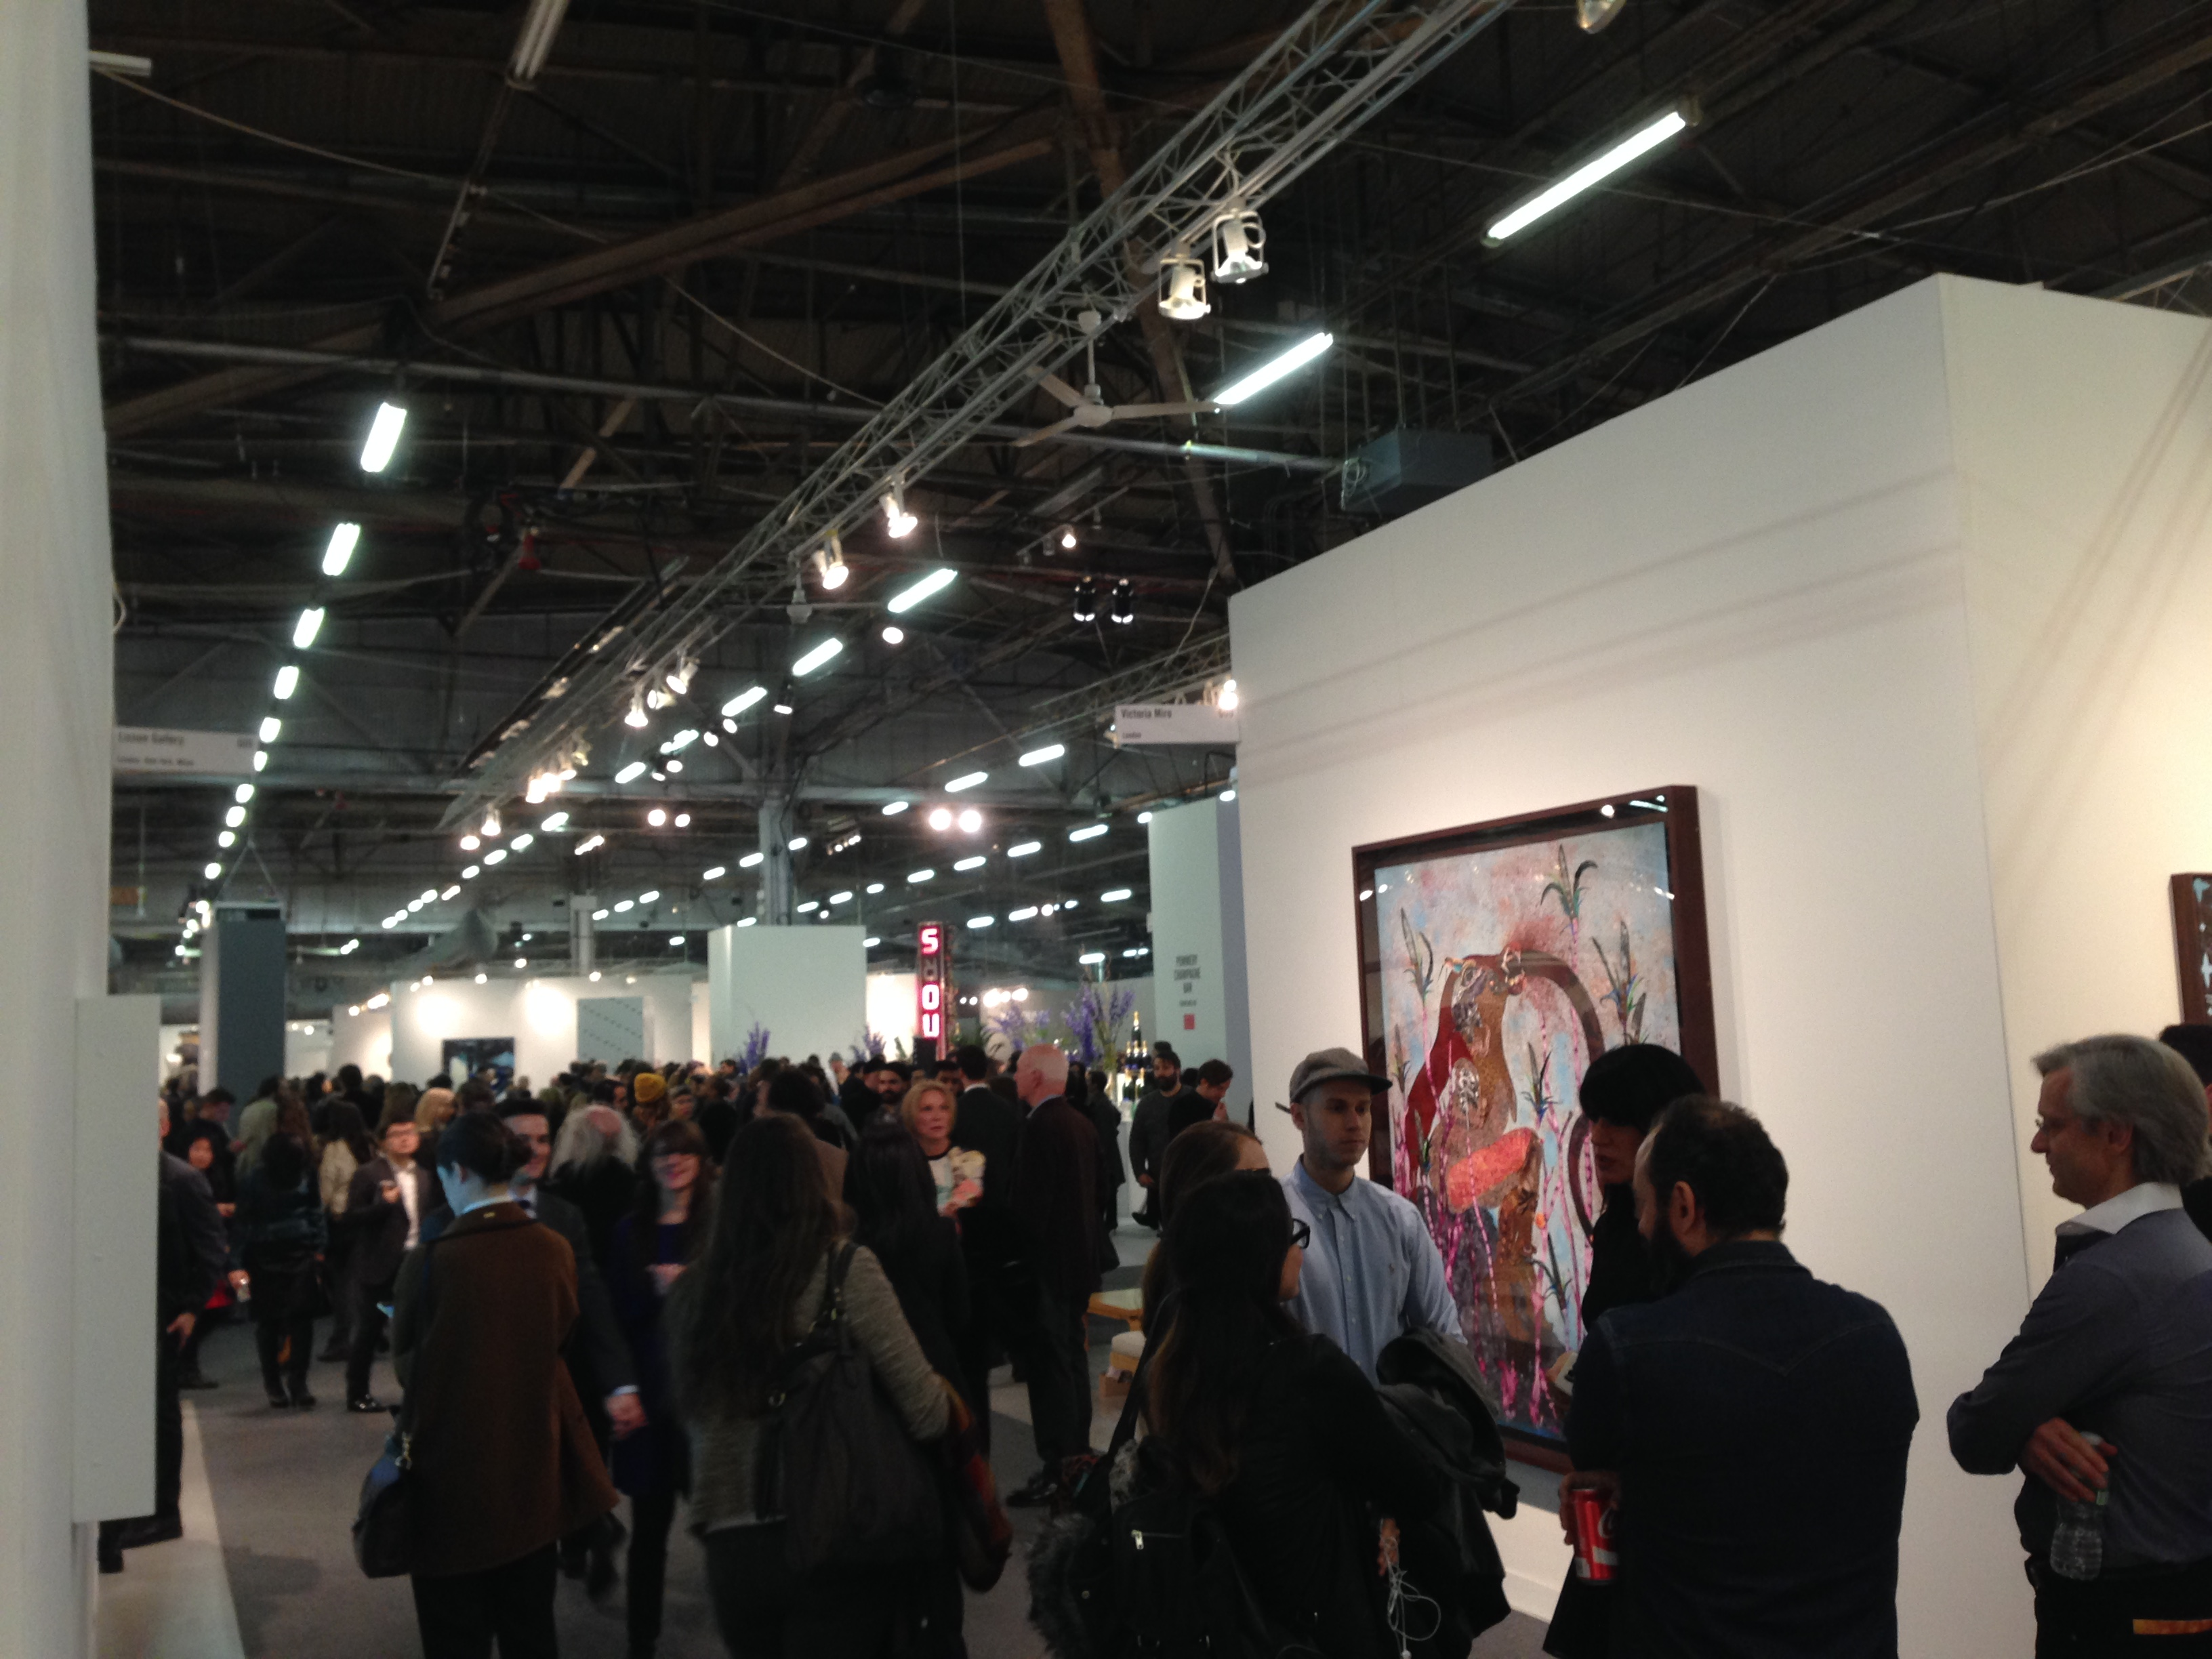 Armory show #1 - space